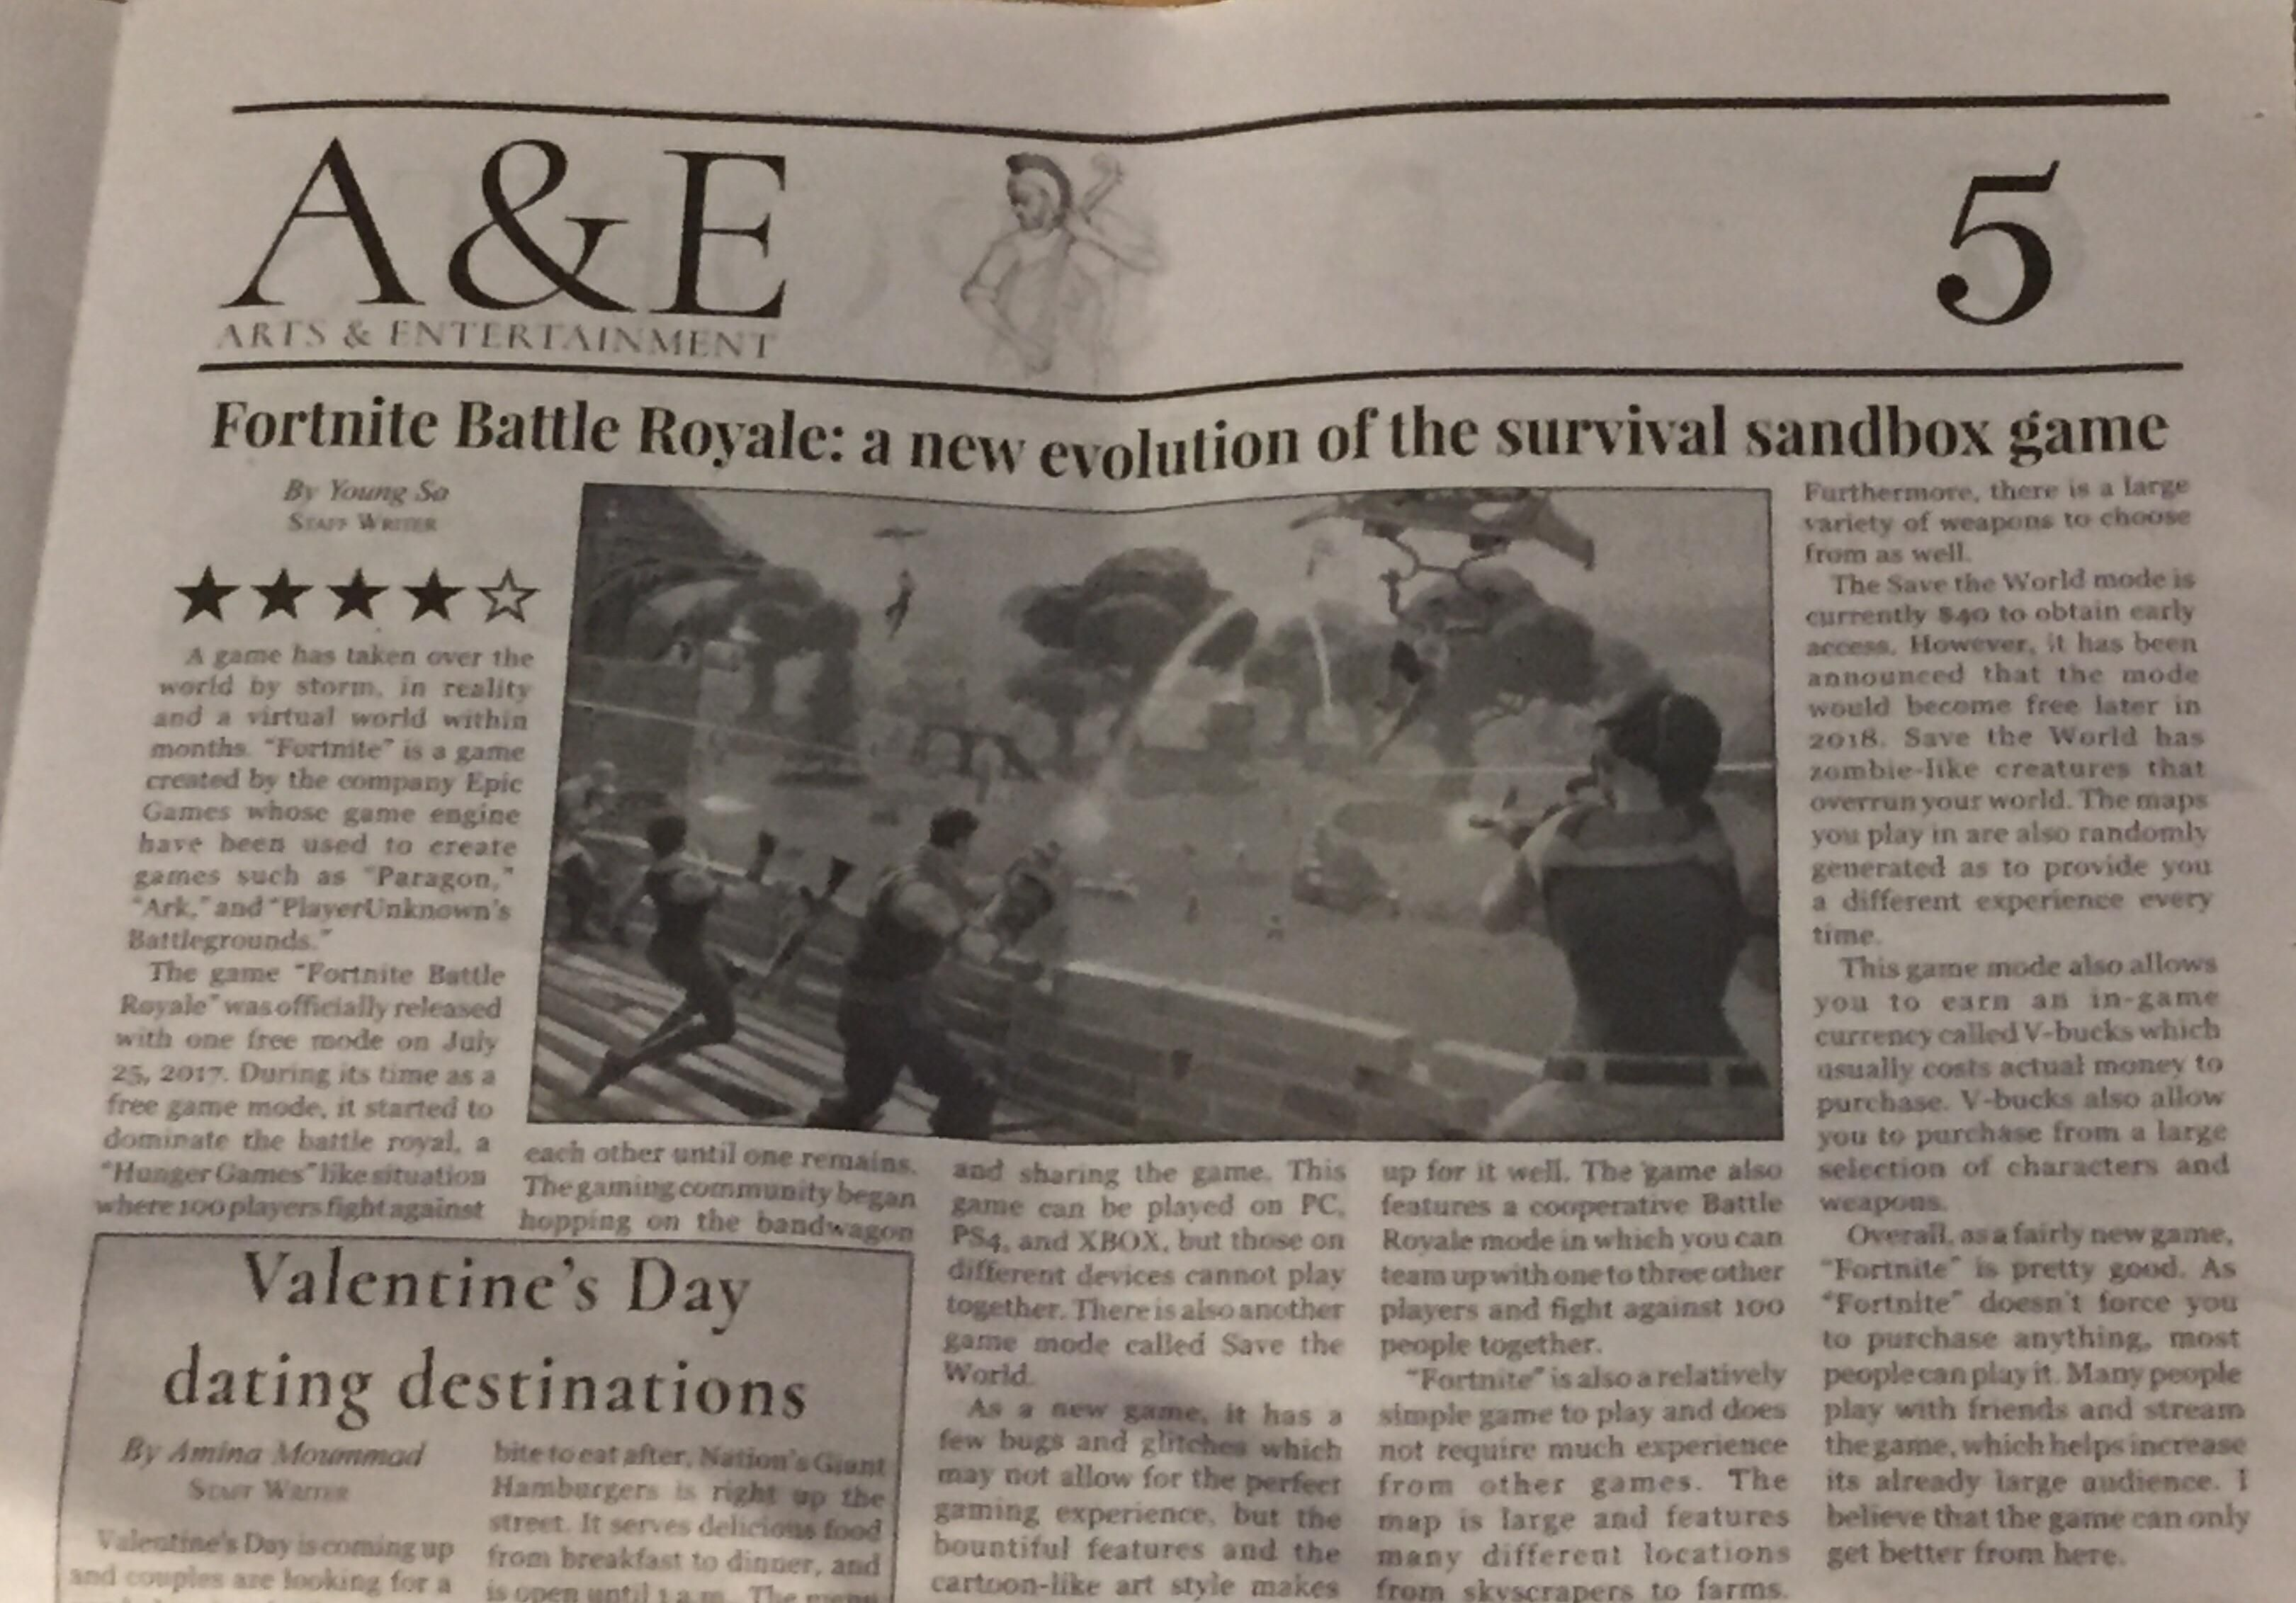 My School Newspaper Has An Article On Fortnite Latestgames